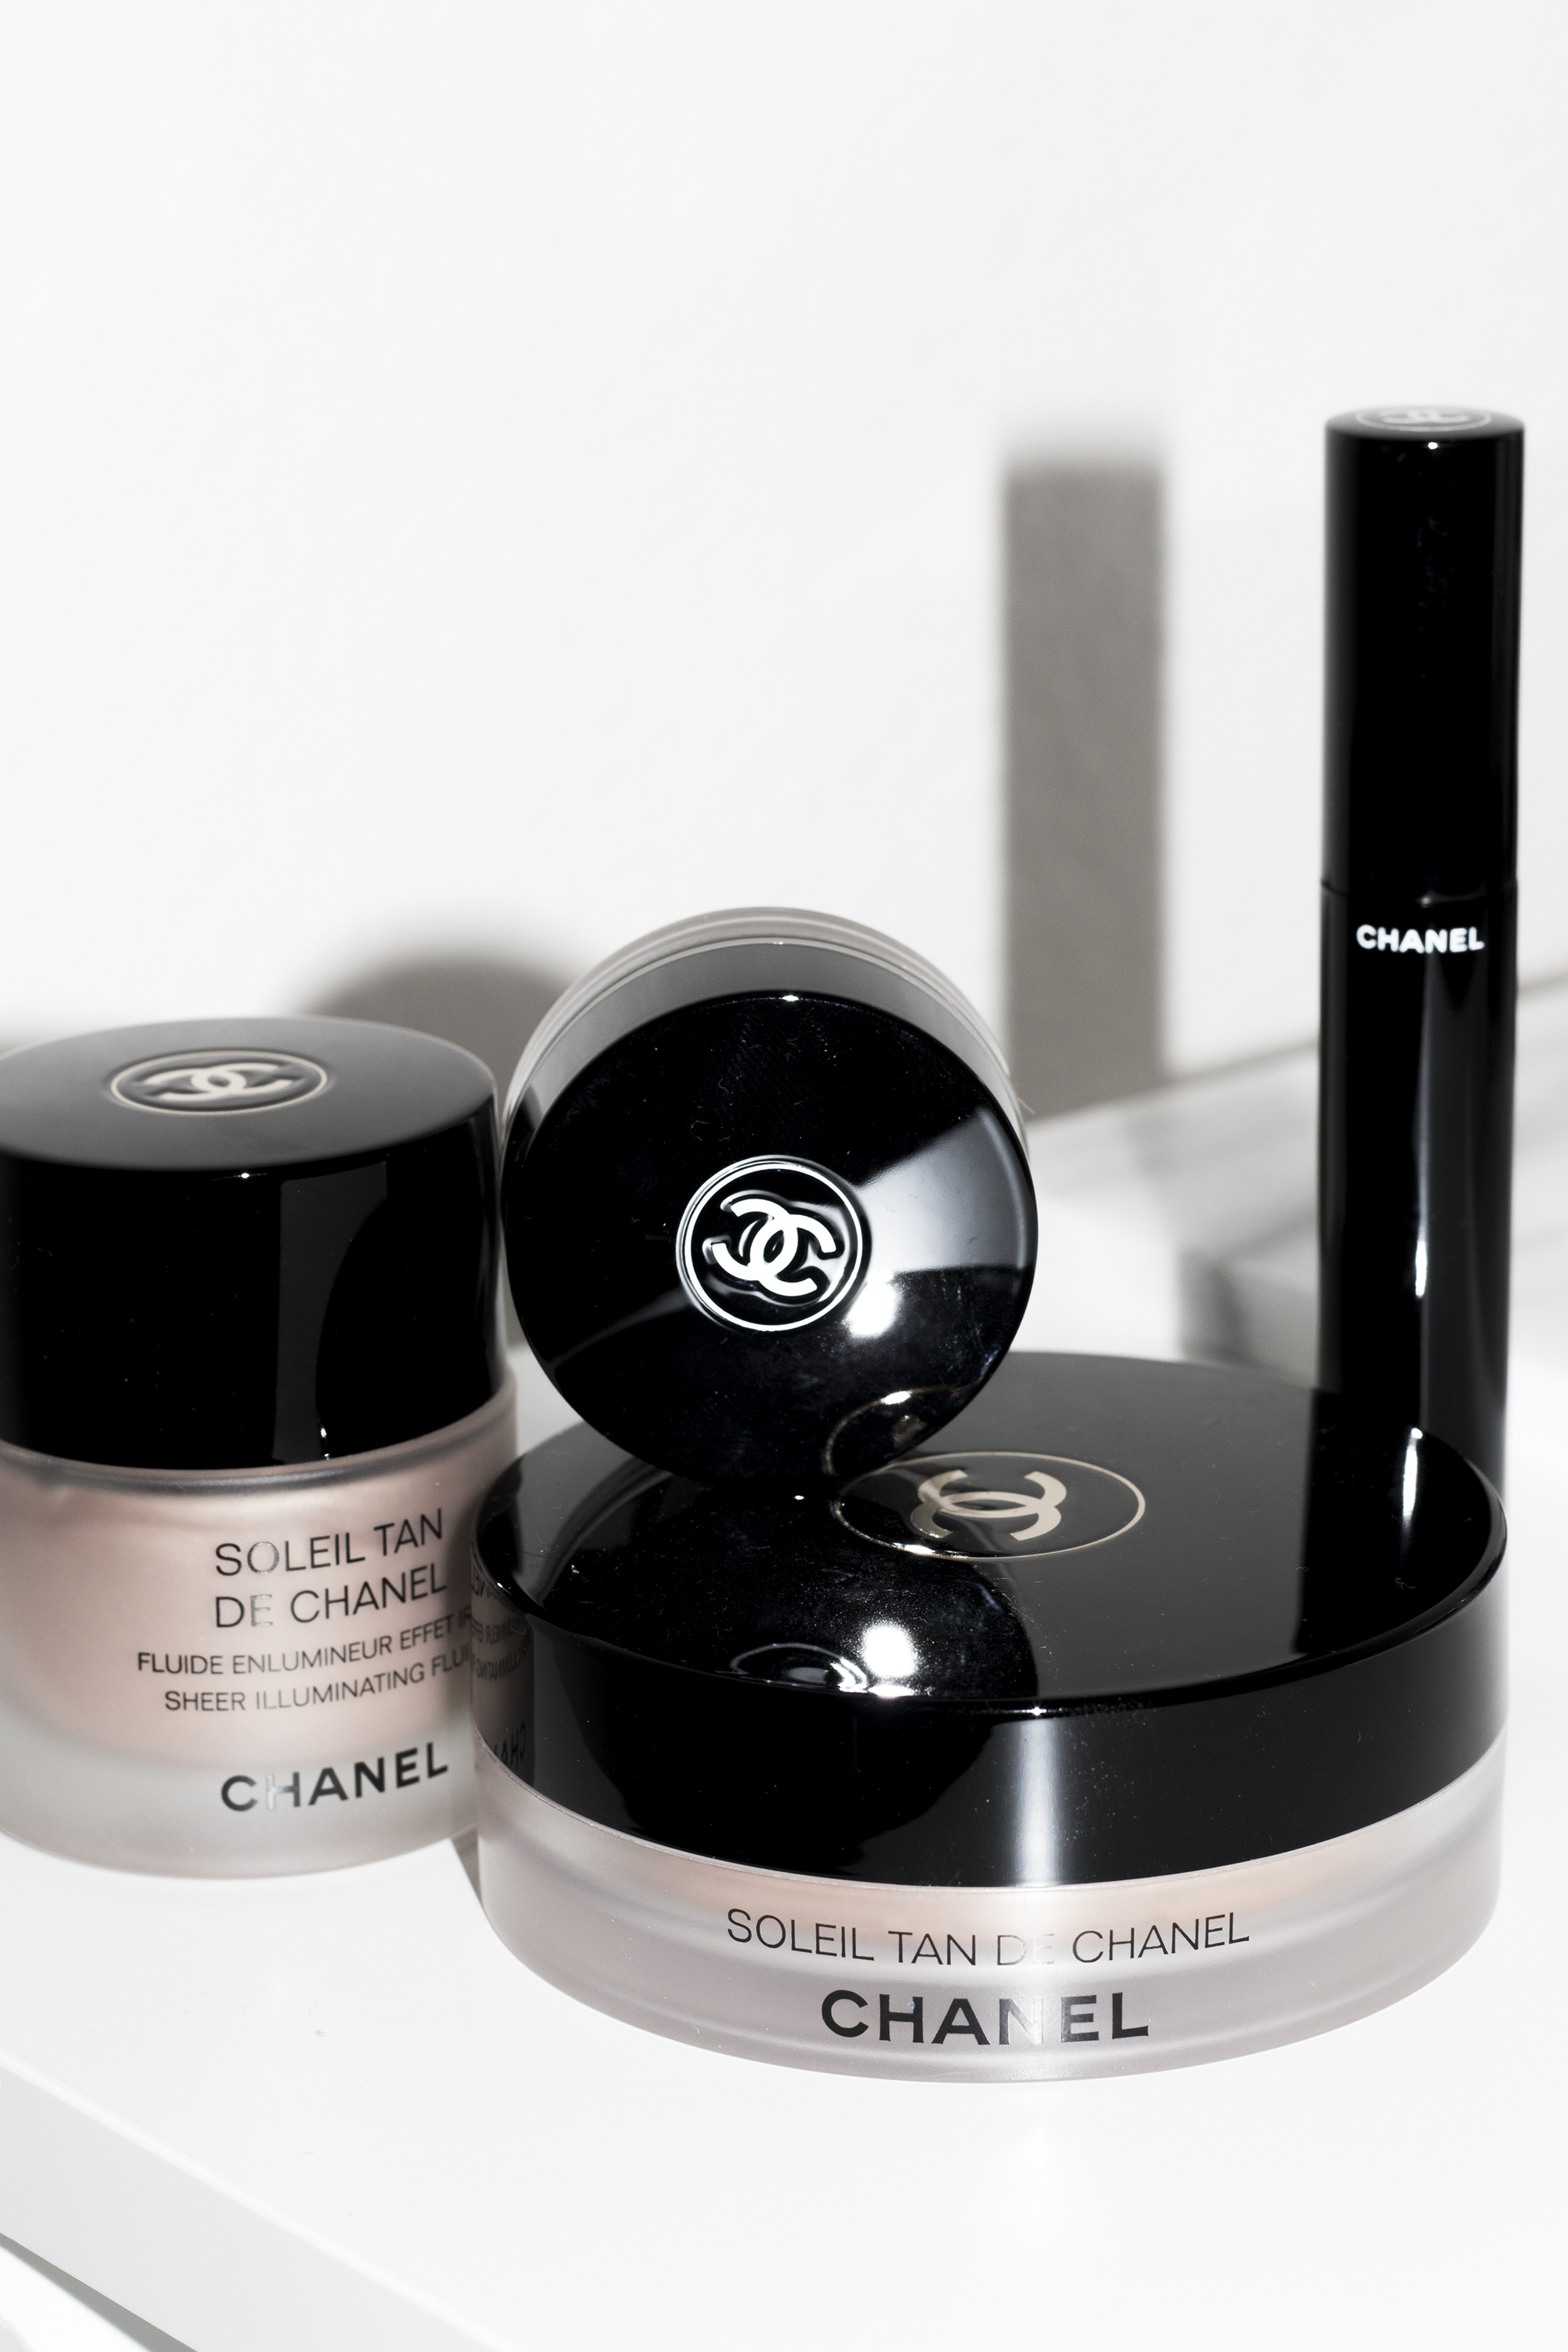 Chanel makeup must haves